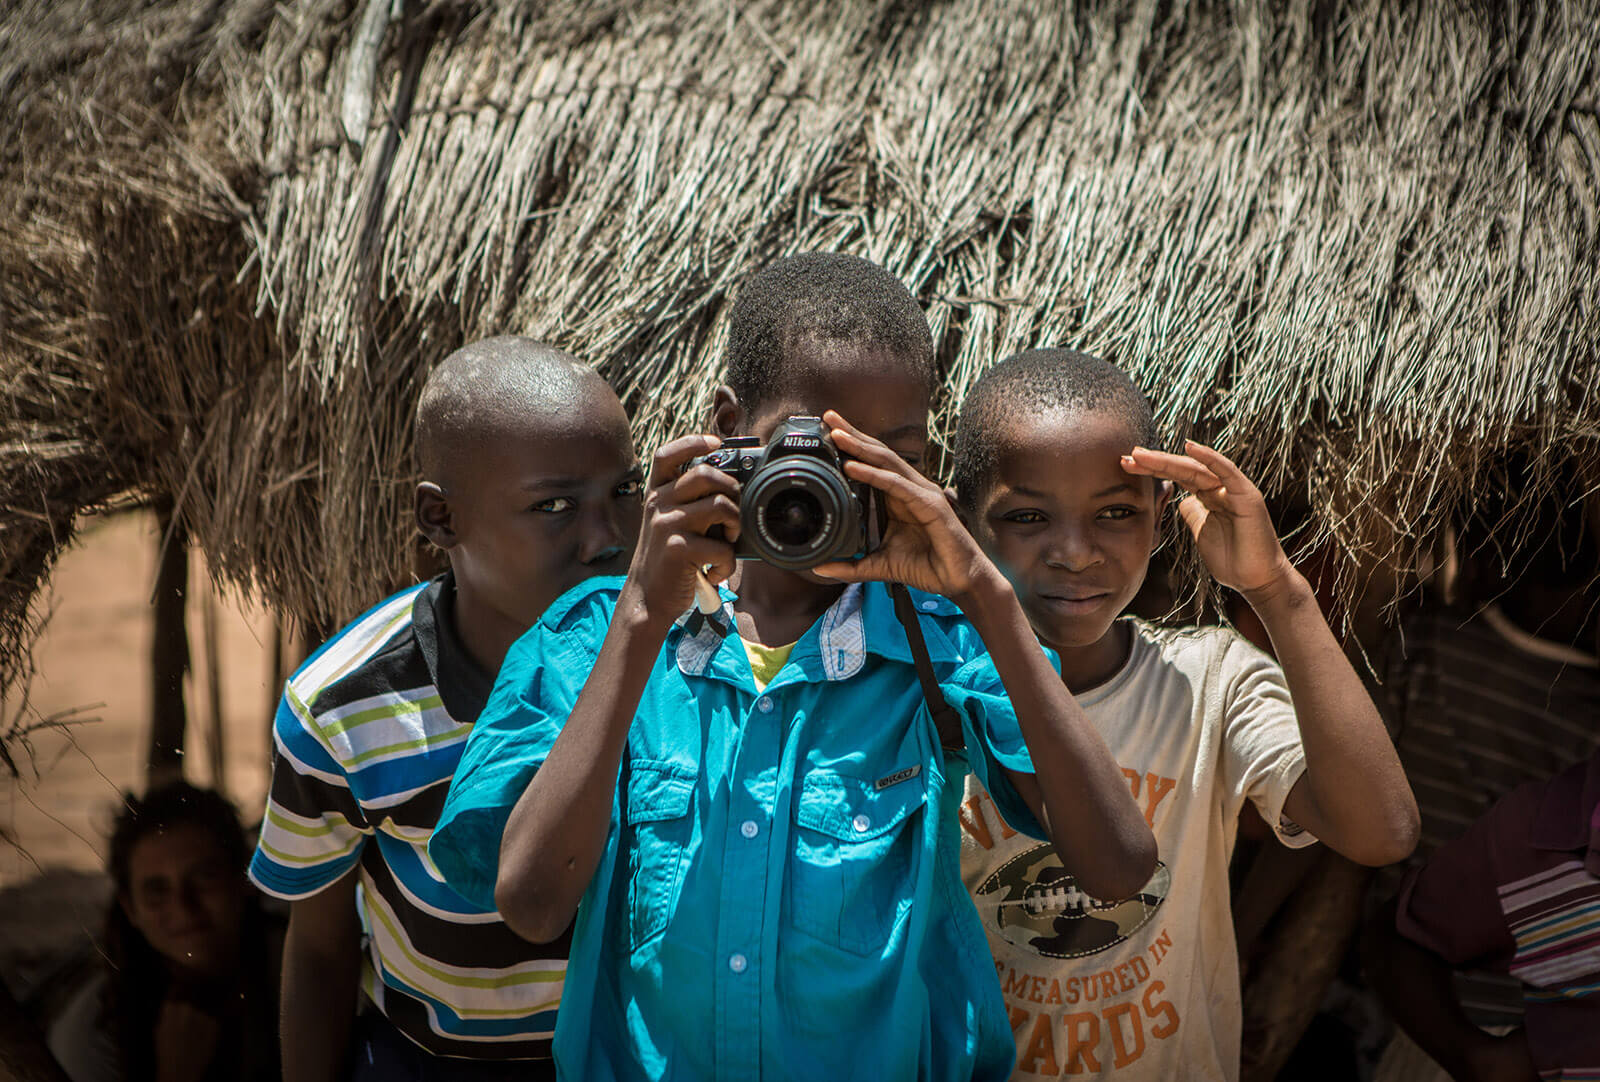 Mozambique kids with a camera taking photos